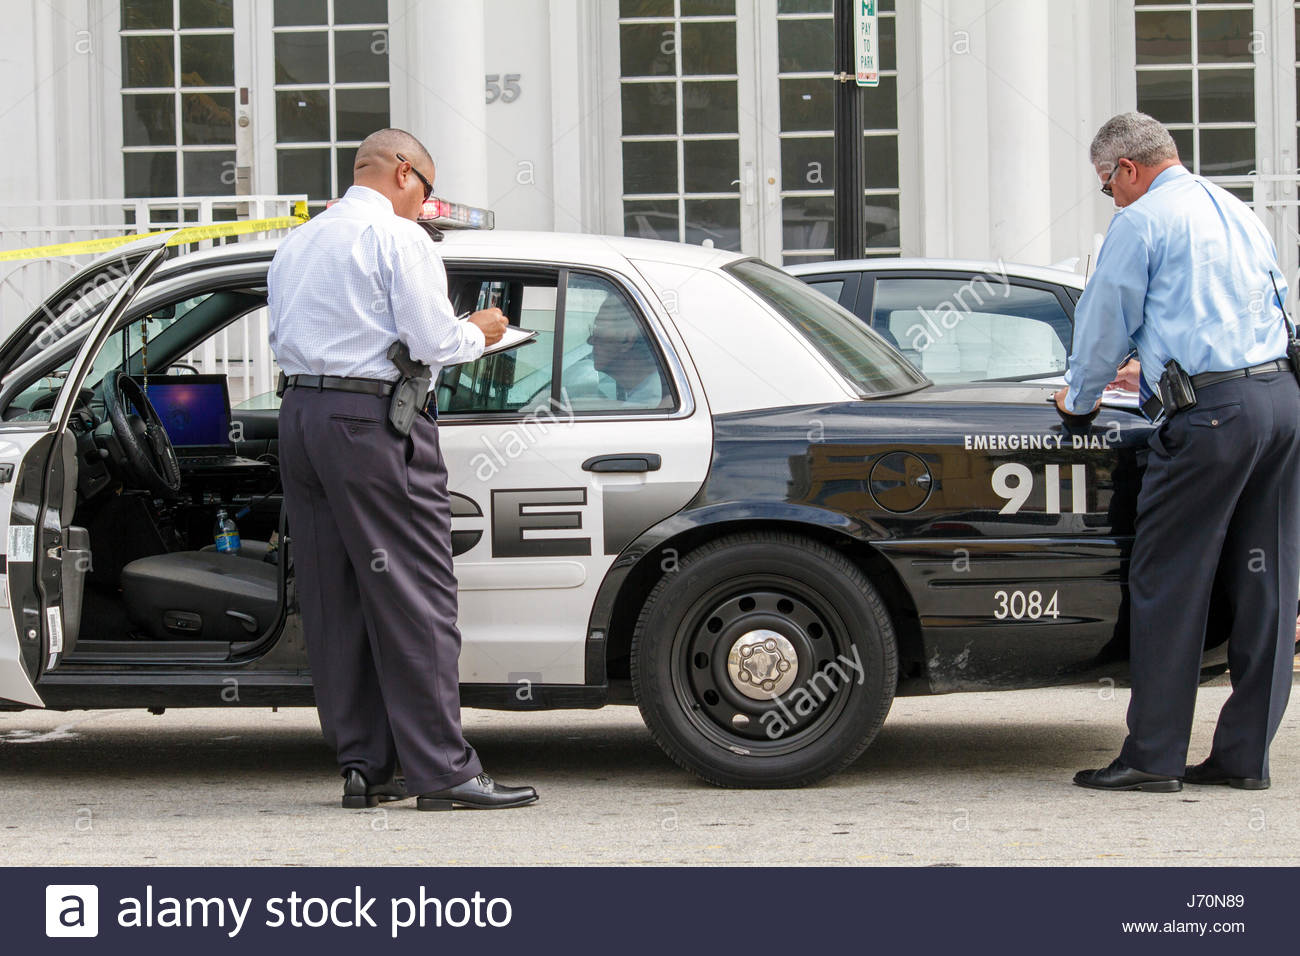 Miami Beach Florida Ocean Drive shooting crime scene murder police policeman detectives vehicle car - Stock Image